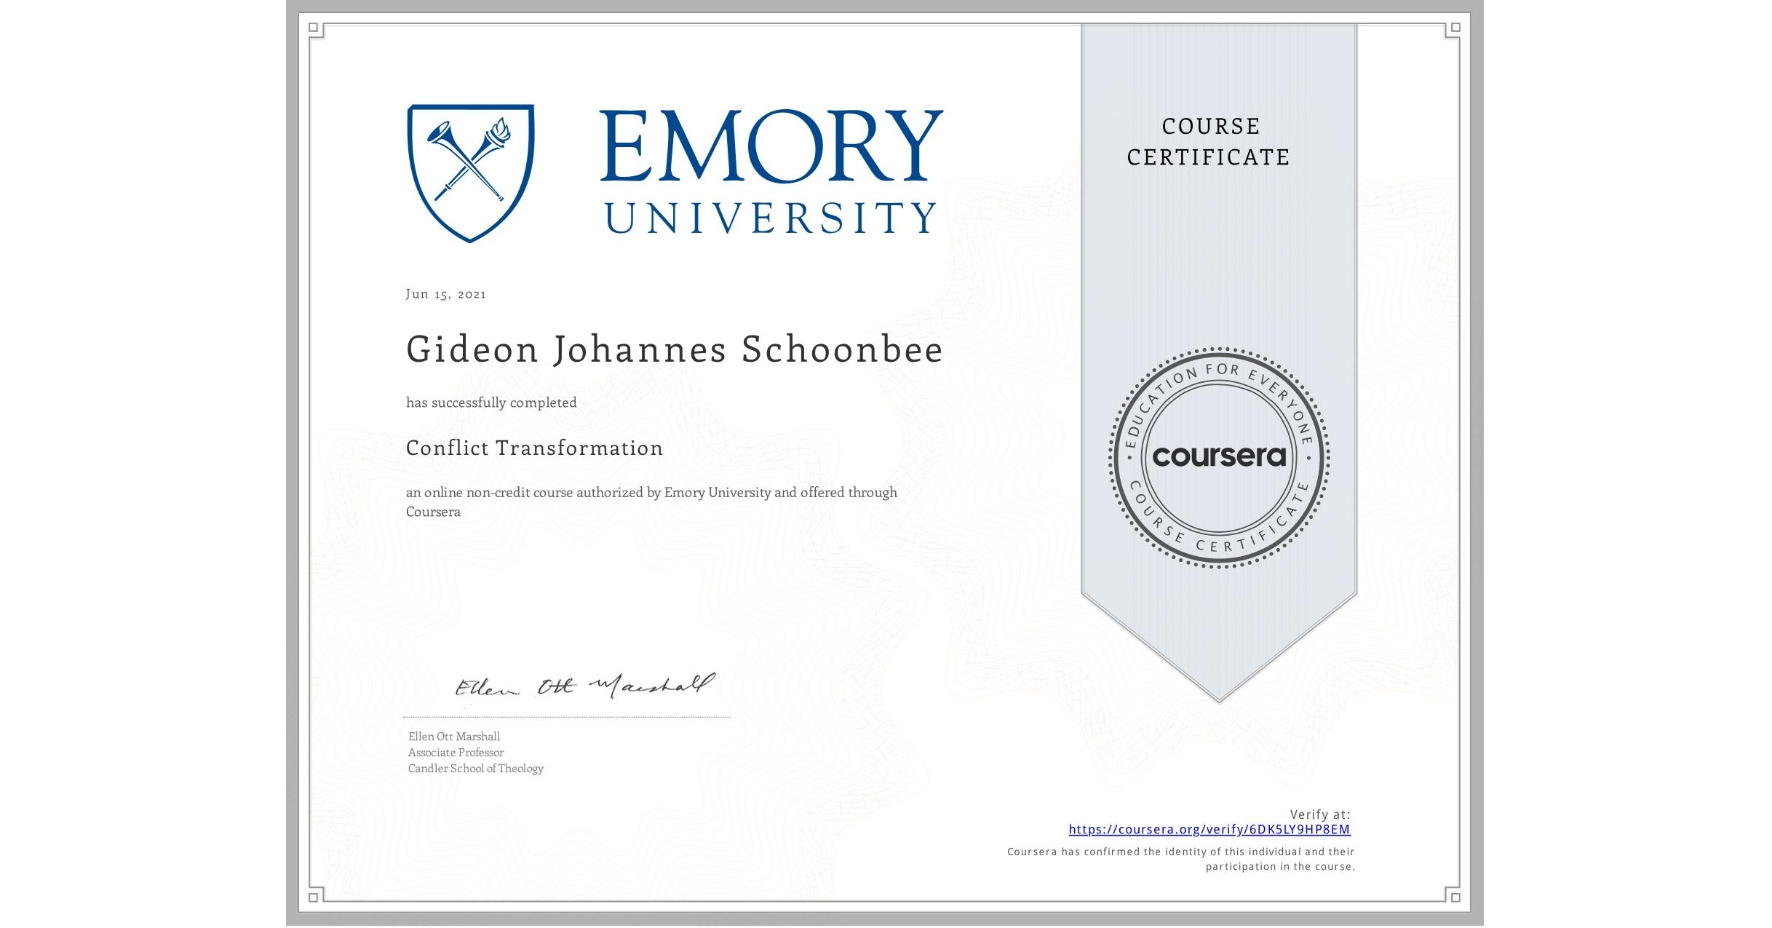 View certificate for Gideon Johannes Schoonbee, Conflict Transformation, an online non-credit course authorized by Emory University and offered through Coursera